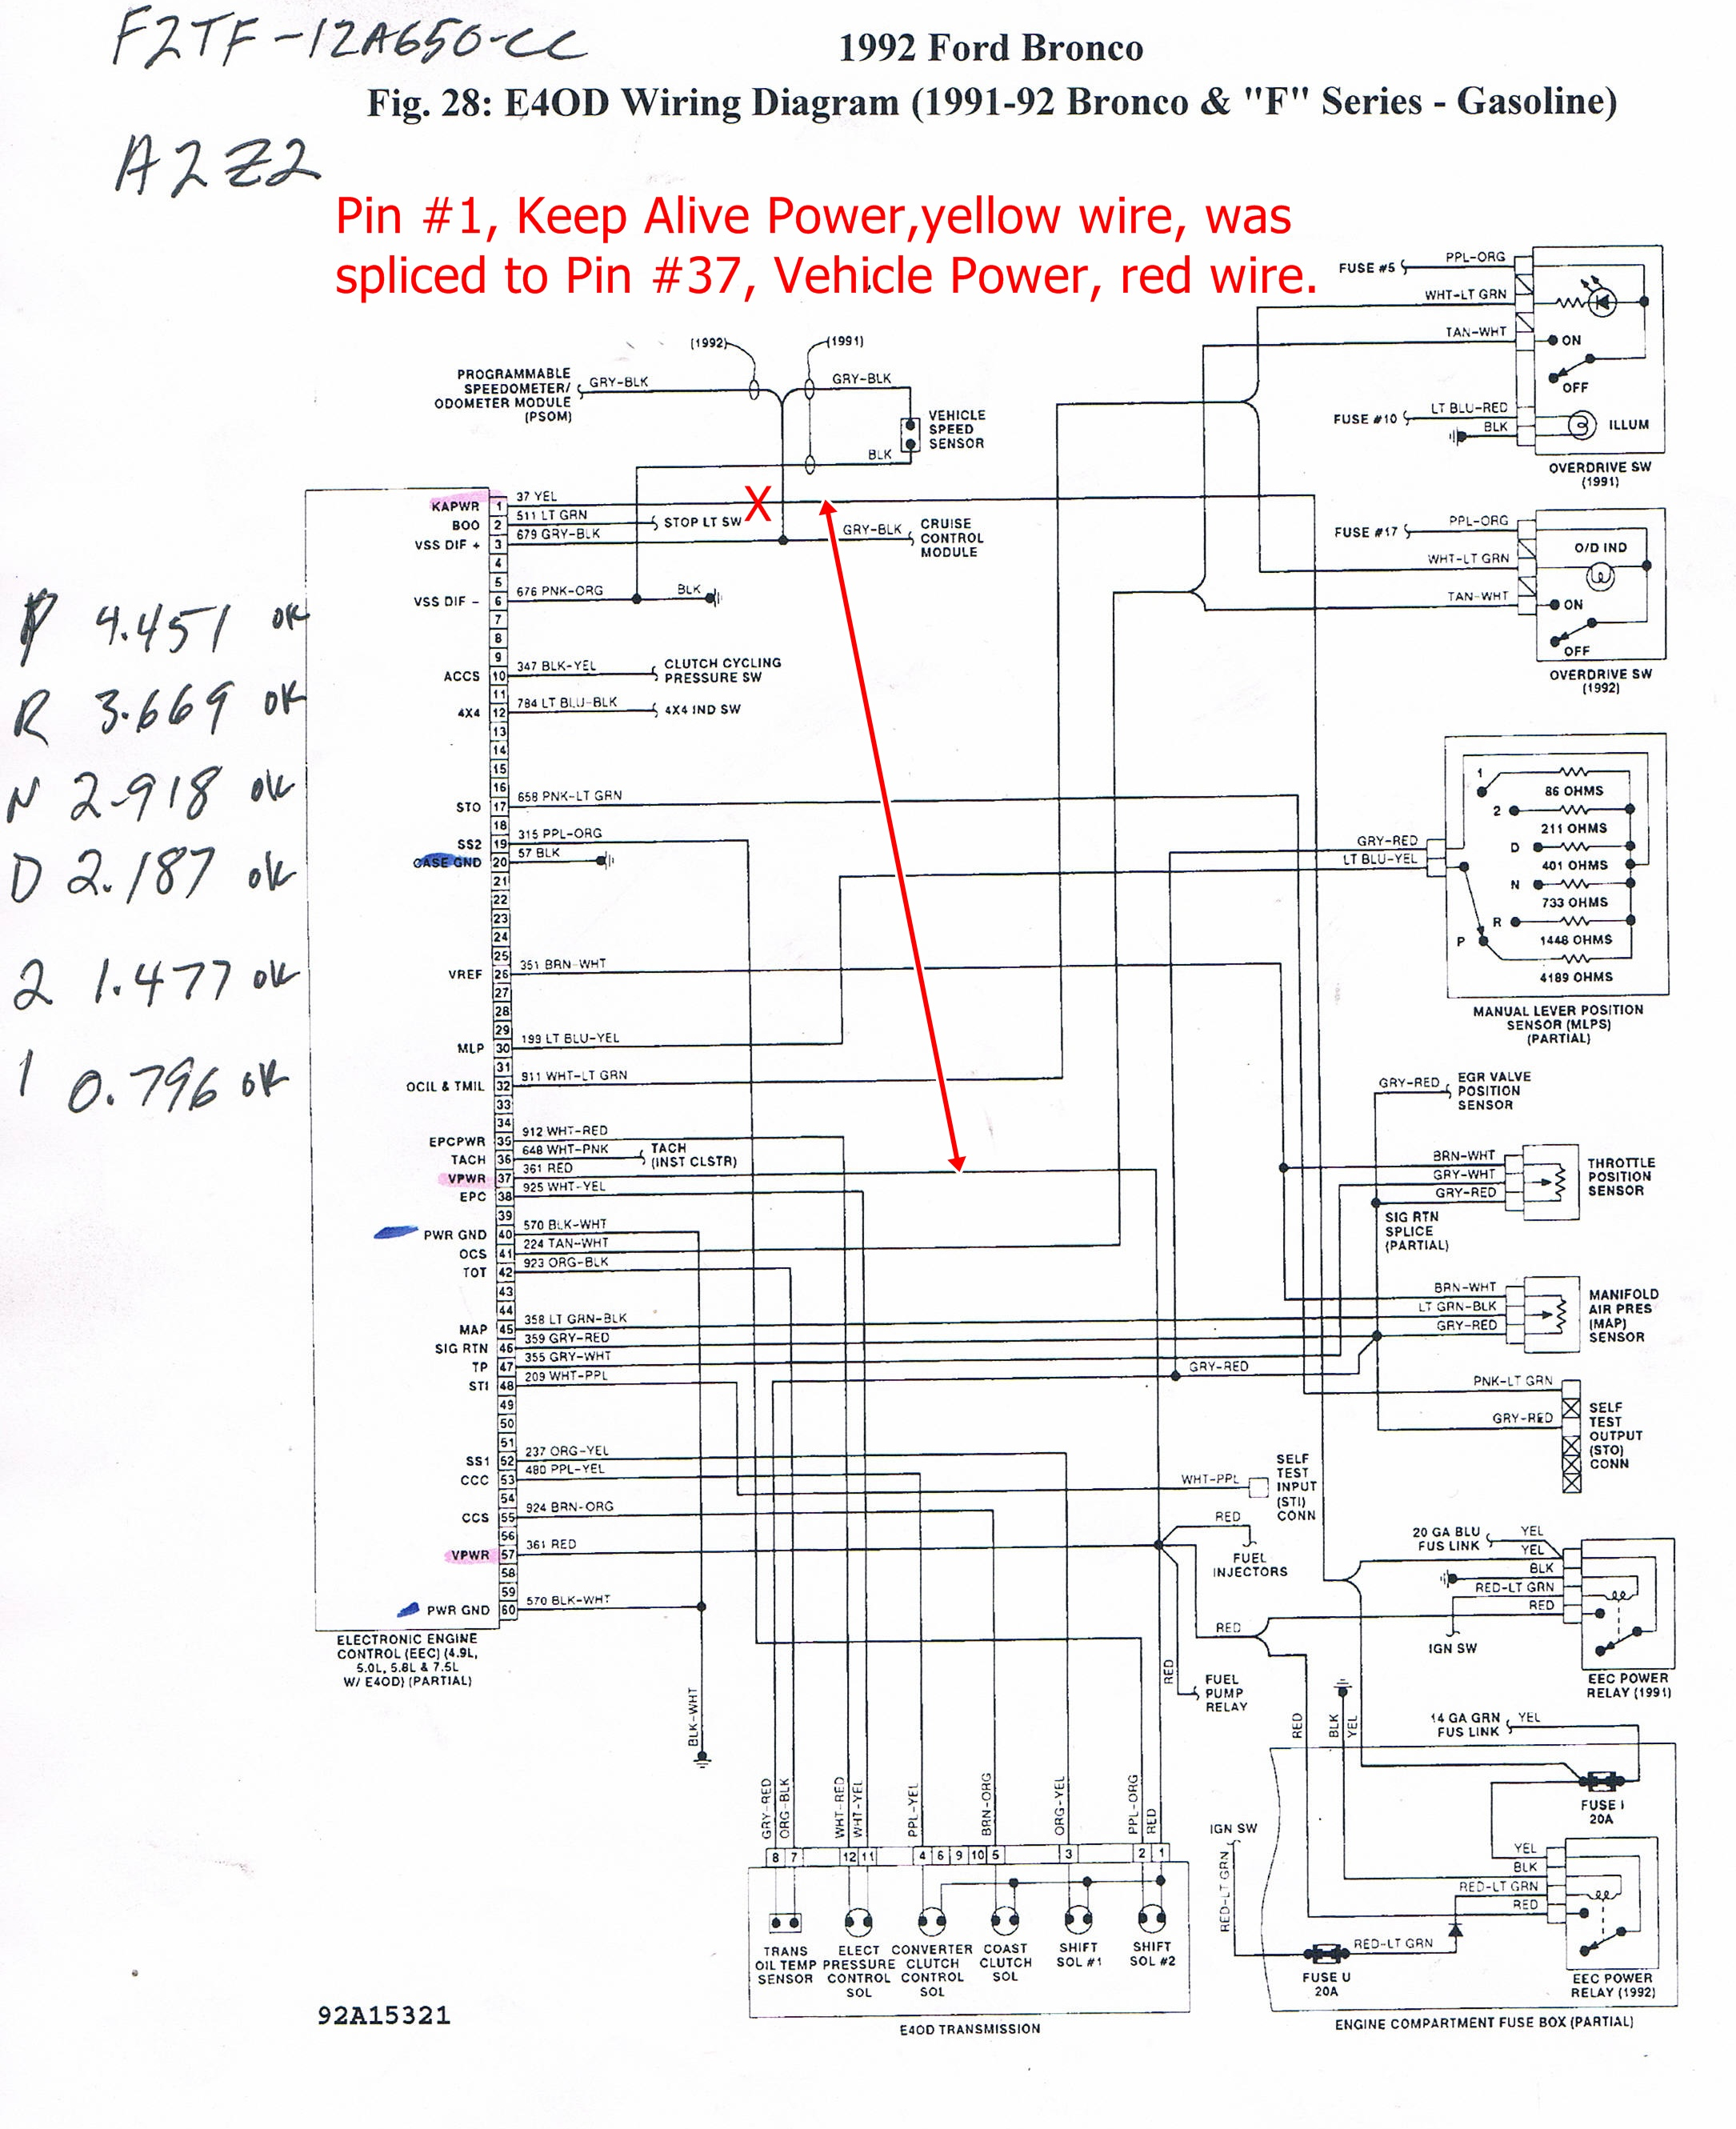 wire diagram january 2013 the transletter 2005 pontiac vibe wiring schematic at readyjetset.co